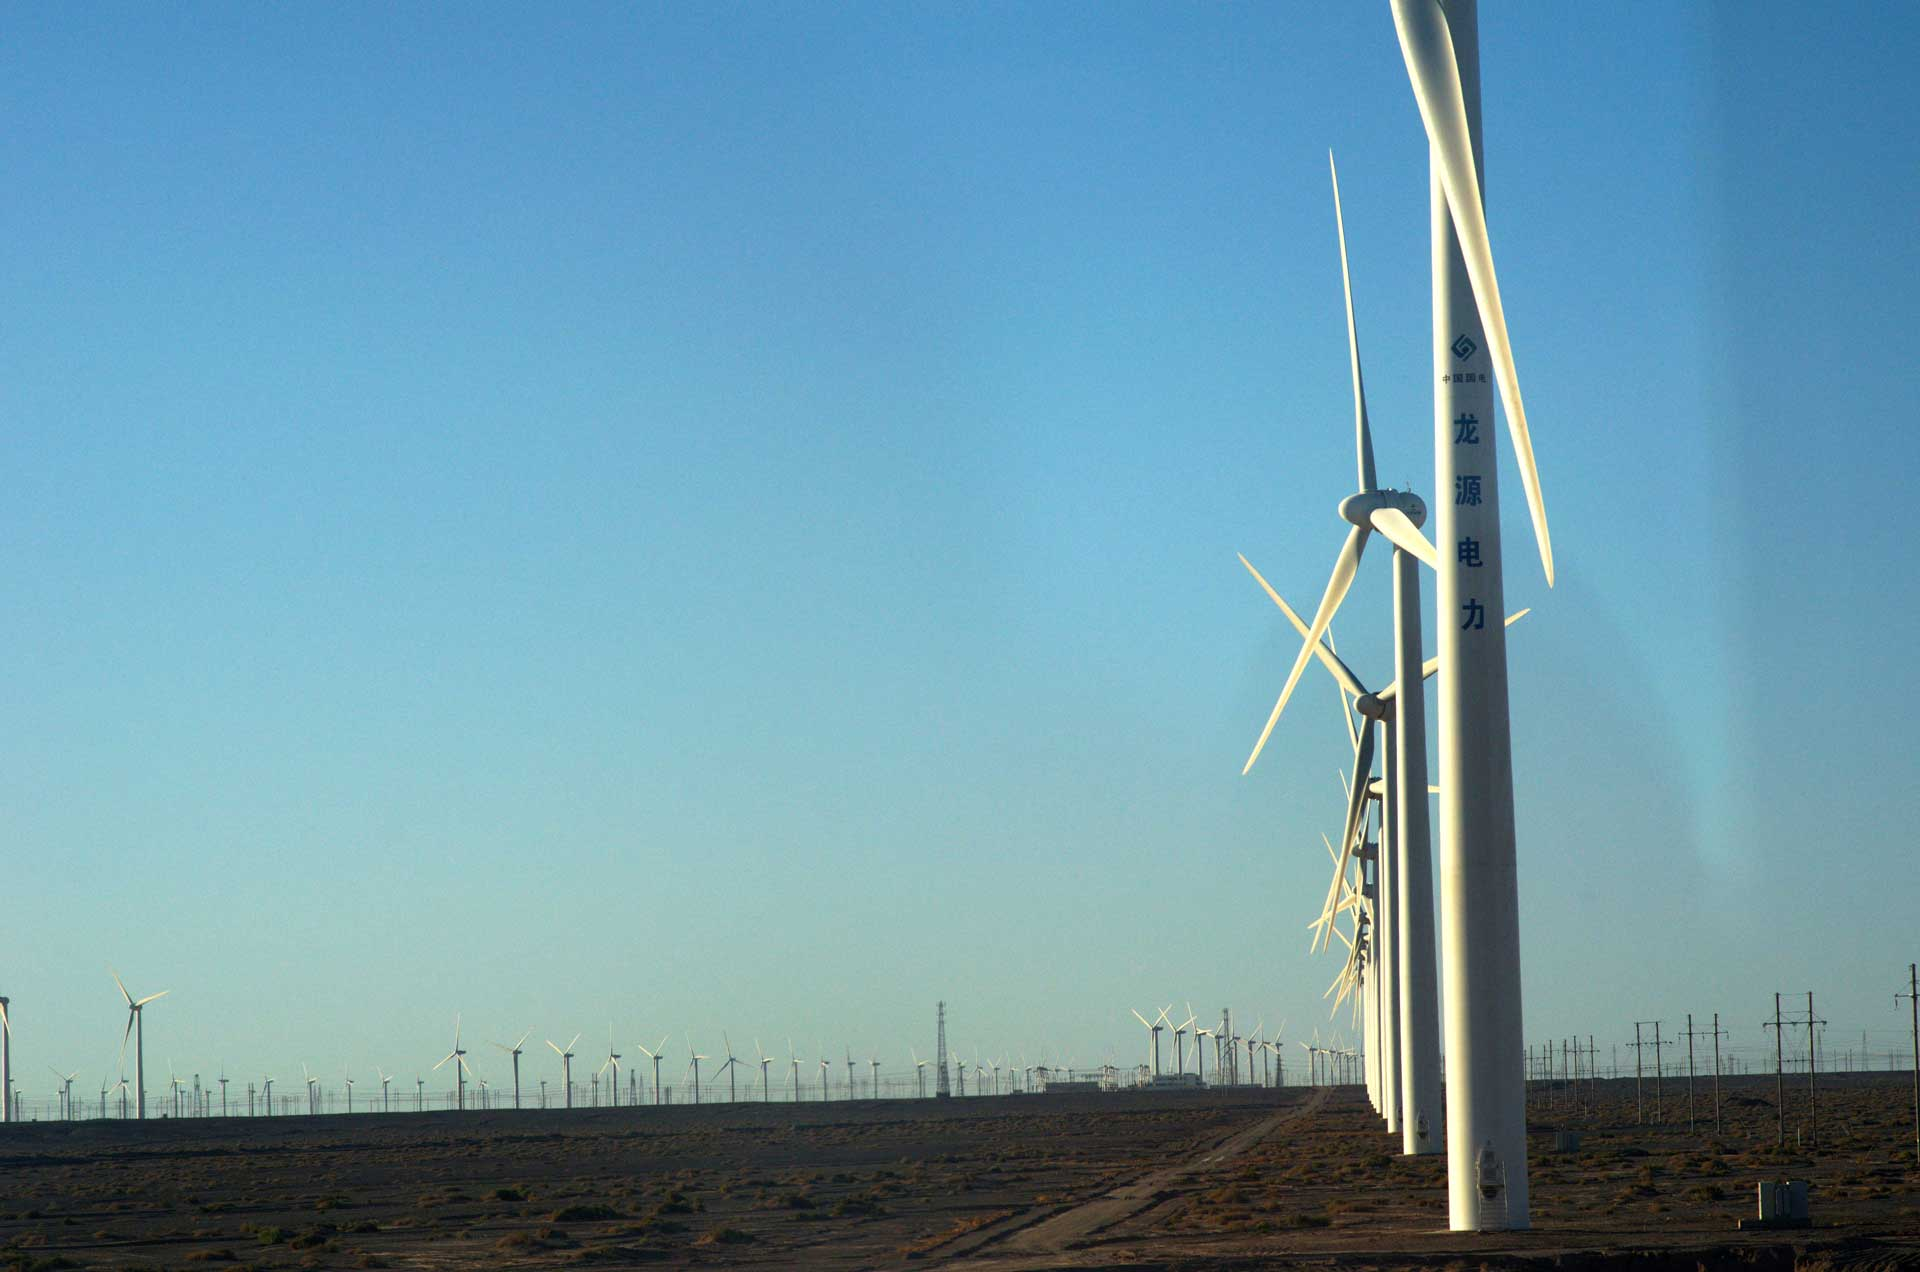 Gansu Wind Farm in the Gobi Desert of western China